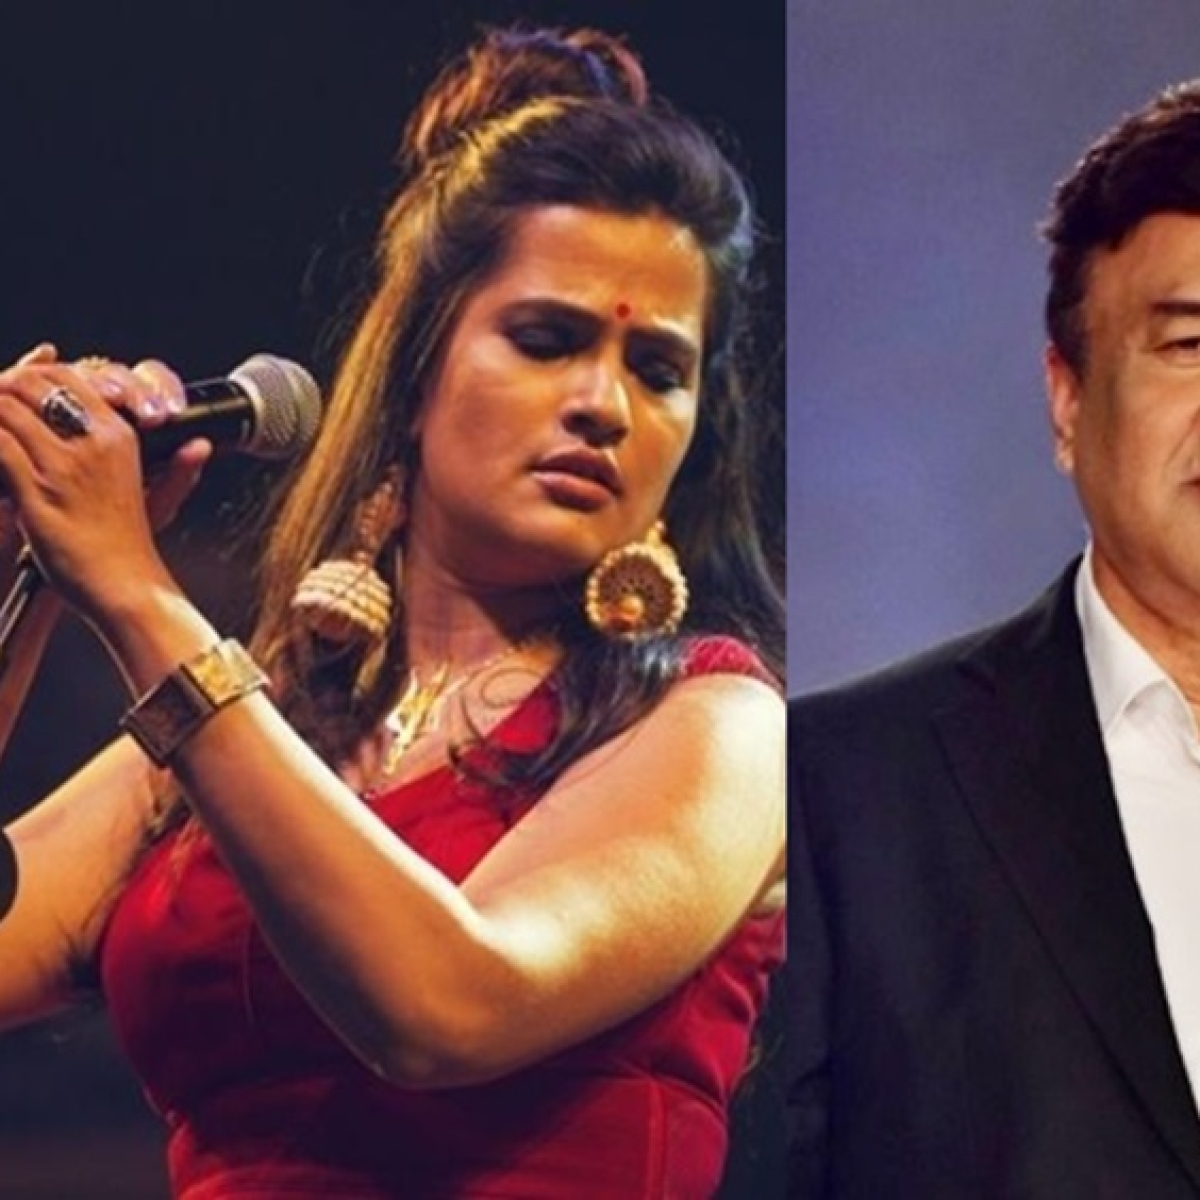 Take a break, go to a sex-rehab: Sona Mohapatra slams Anu Malik's open letter